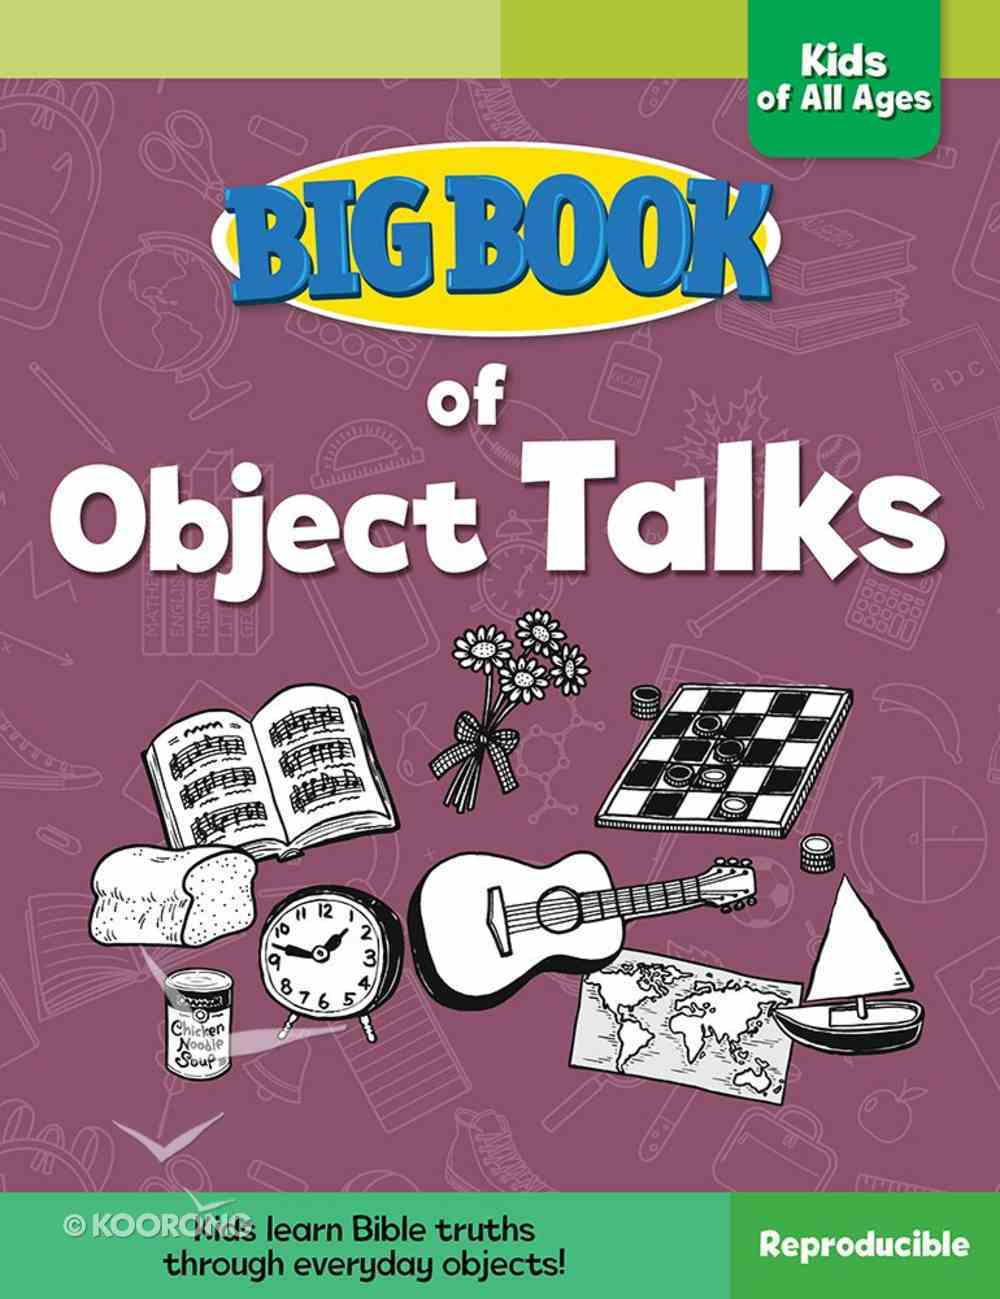 Big Book of Object Talks For Kids of All Ages For Kids of All Ages (Reproducible) Paperback